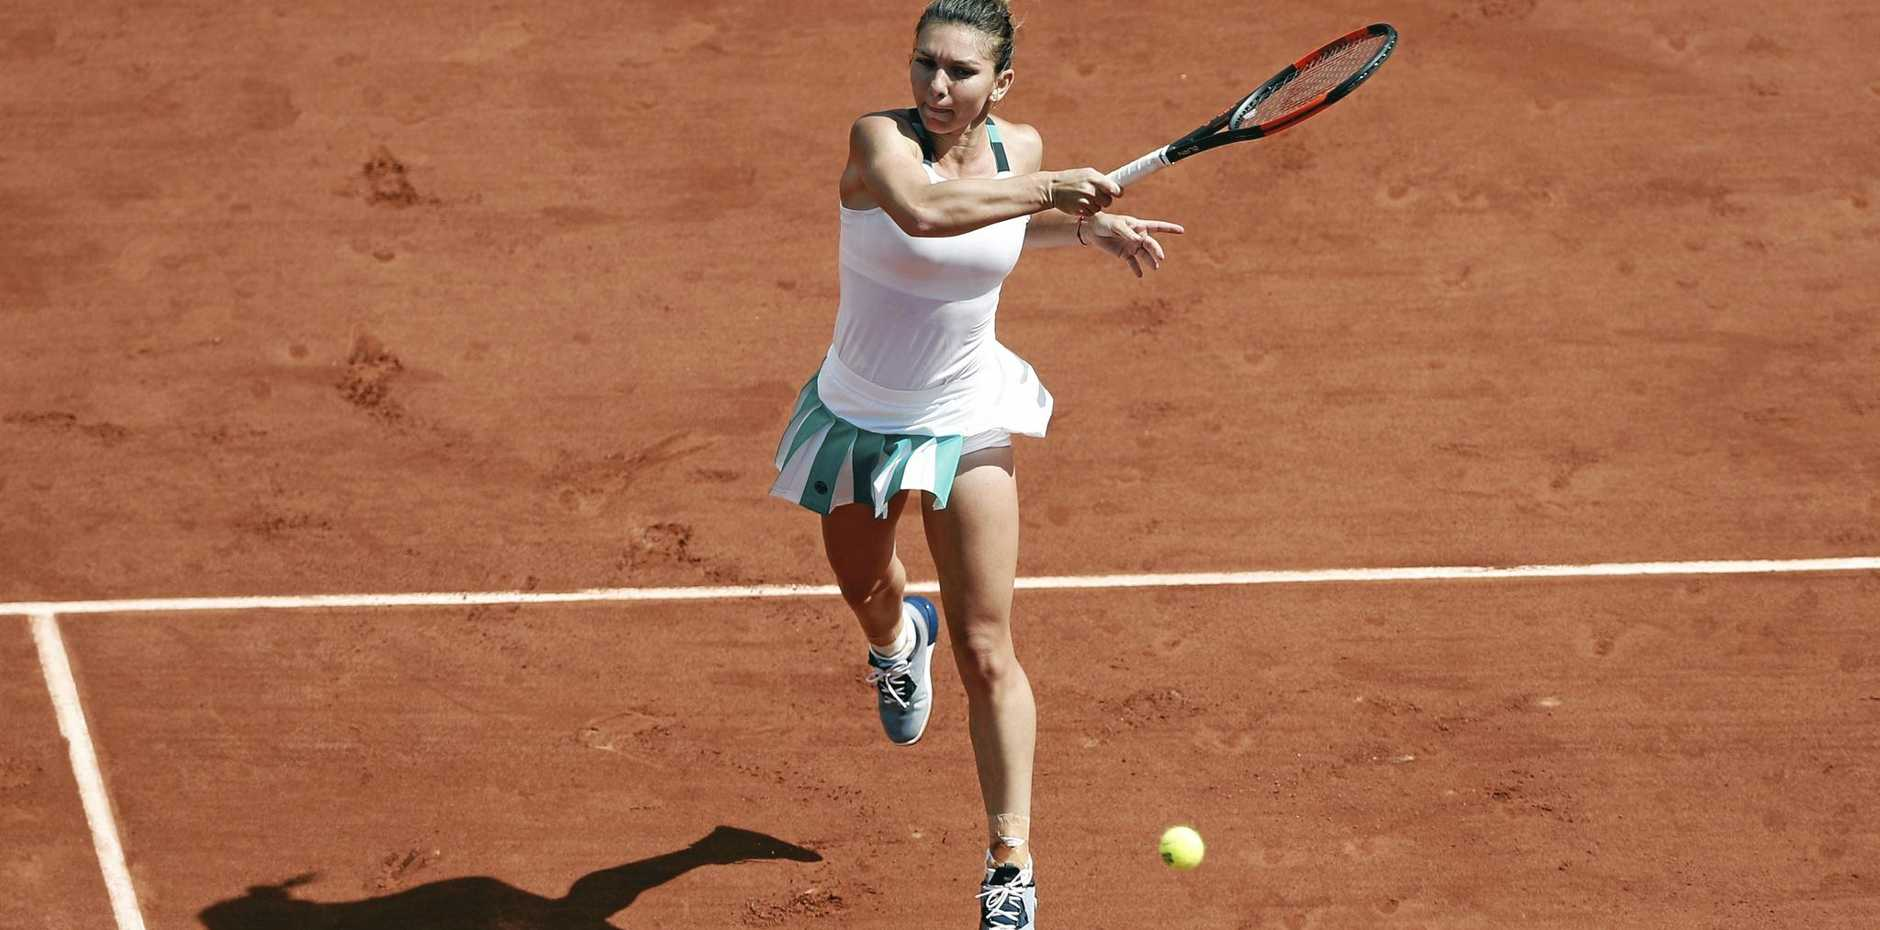 Simona Halep of Romania in action against Carla Suarez Navarro of Spain at the French Open.